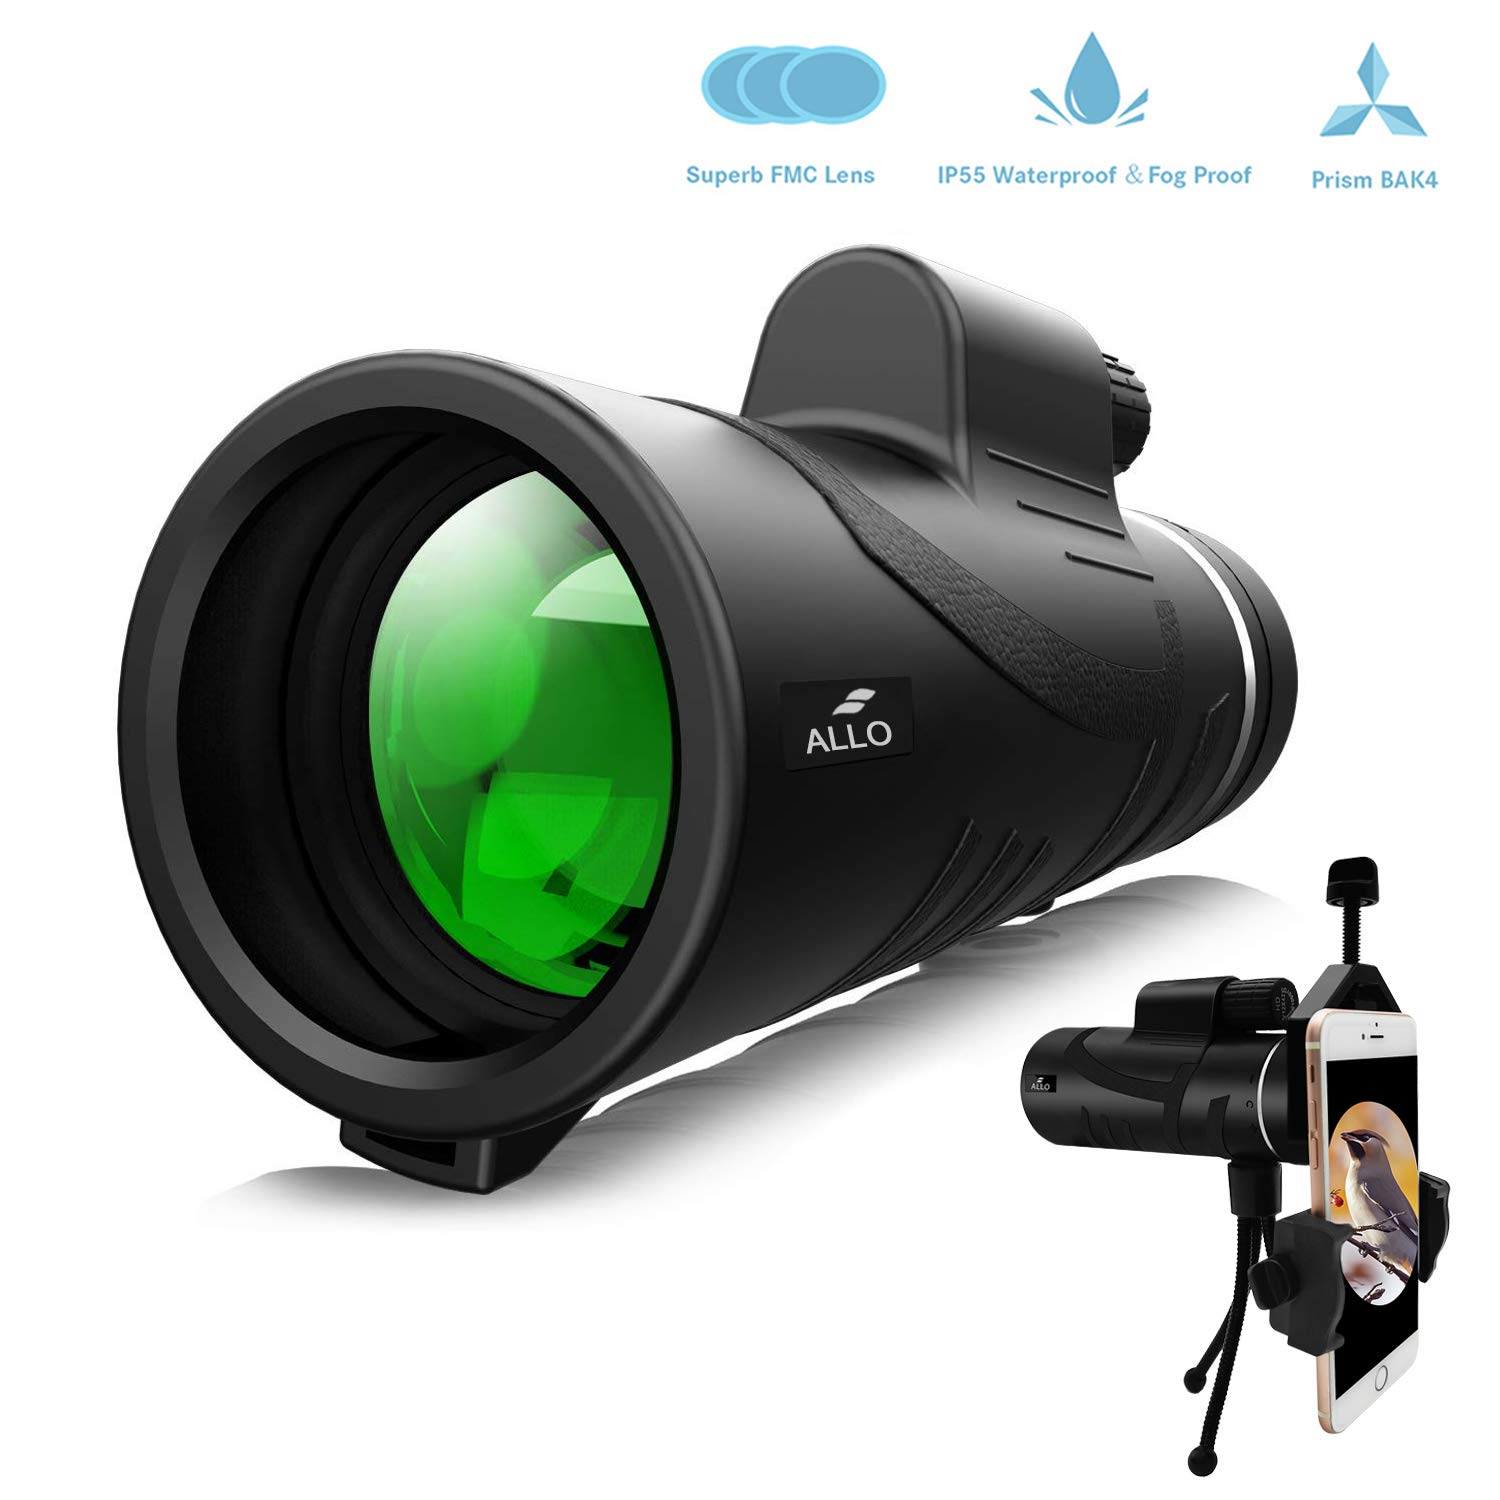 Allo 12x42 High Power HD Monocular Telescope, Low Night Vision Monocular for Adults with Phone Adapter and Tripod - Bird Watching, Hunting, Camping, Traveling, Outdoor Sports by Allo